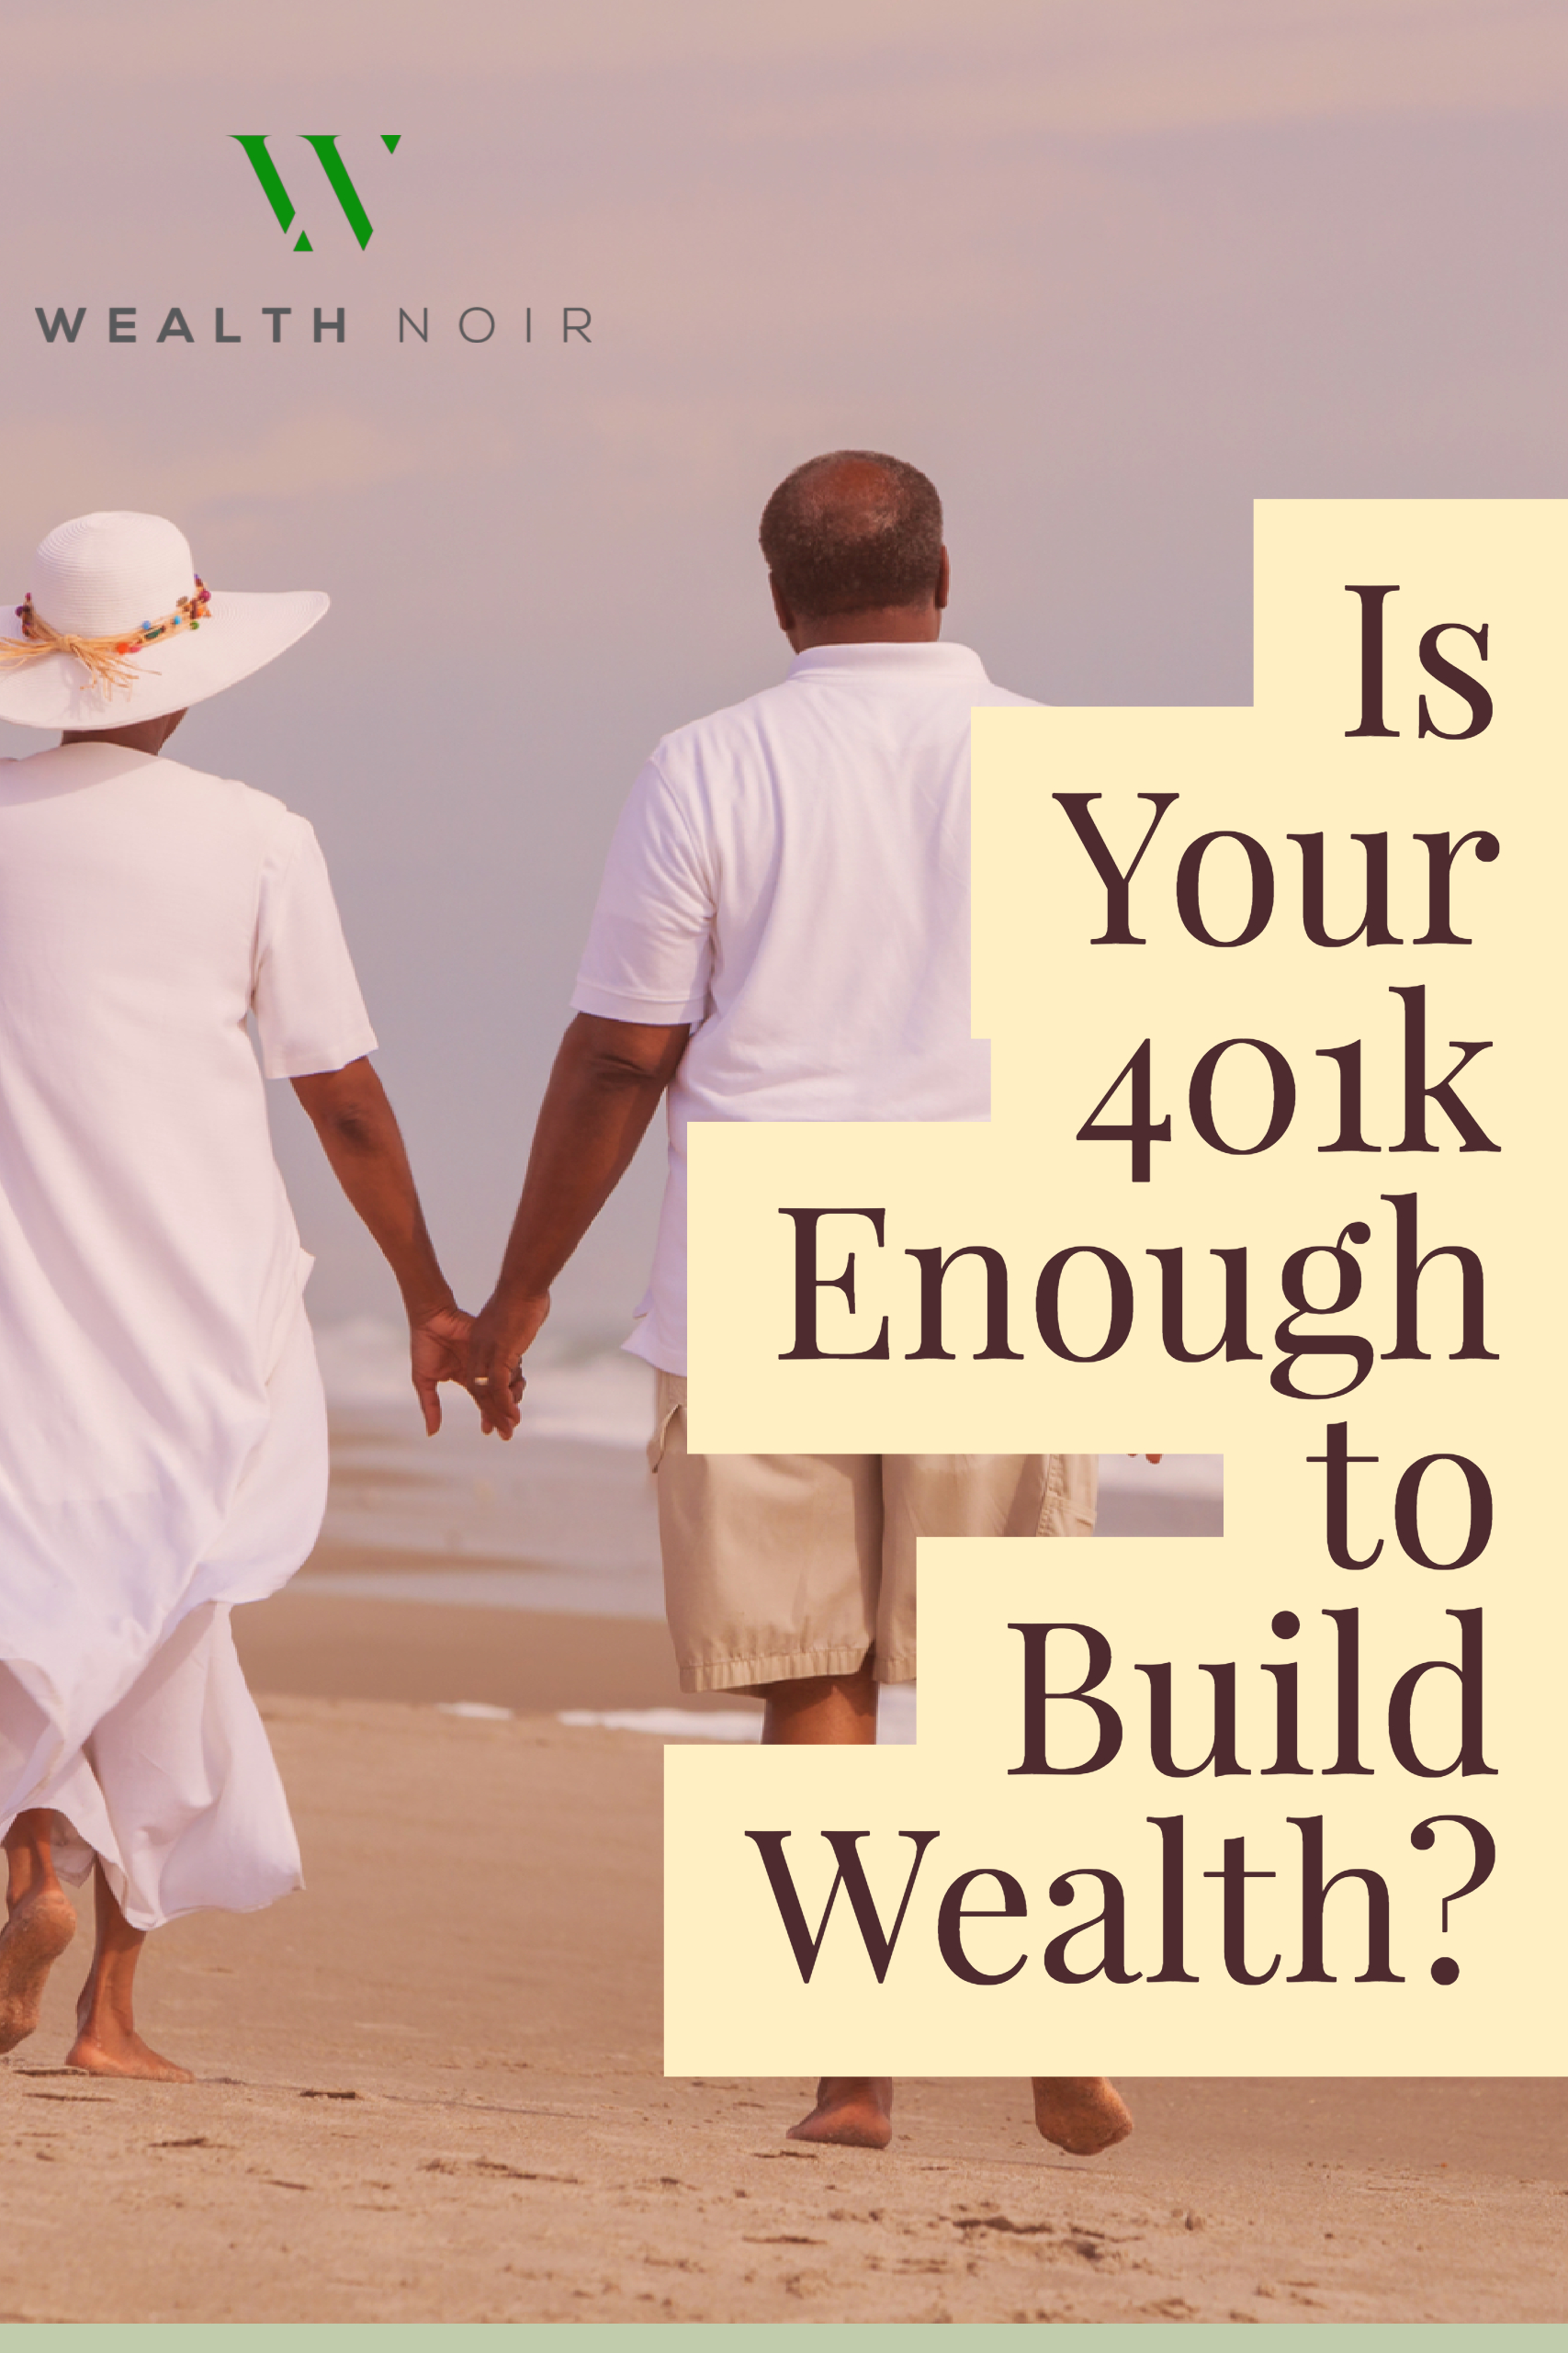 Great advice on building wealth. Looks like you need more than a 401k.